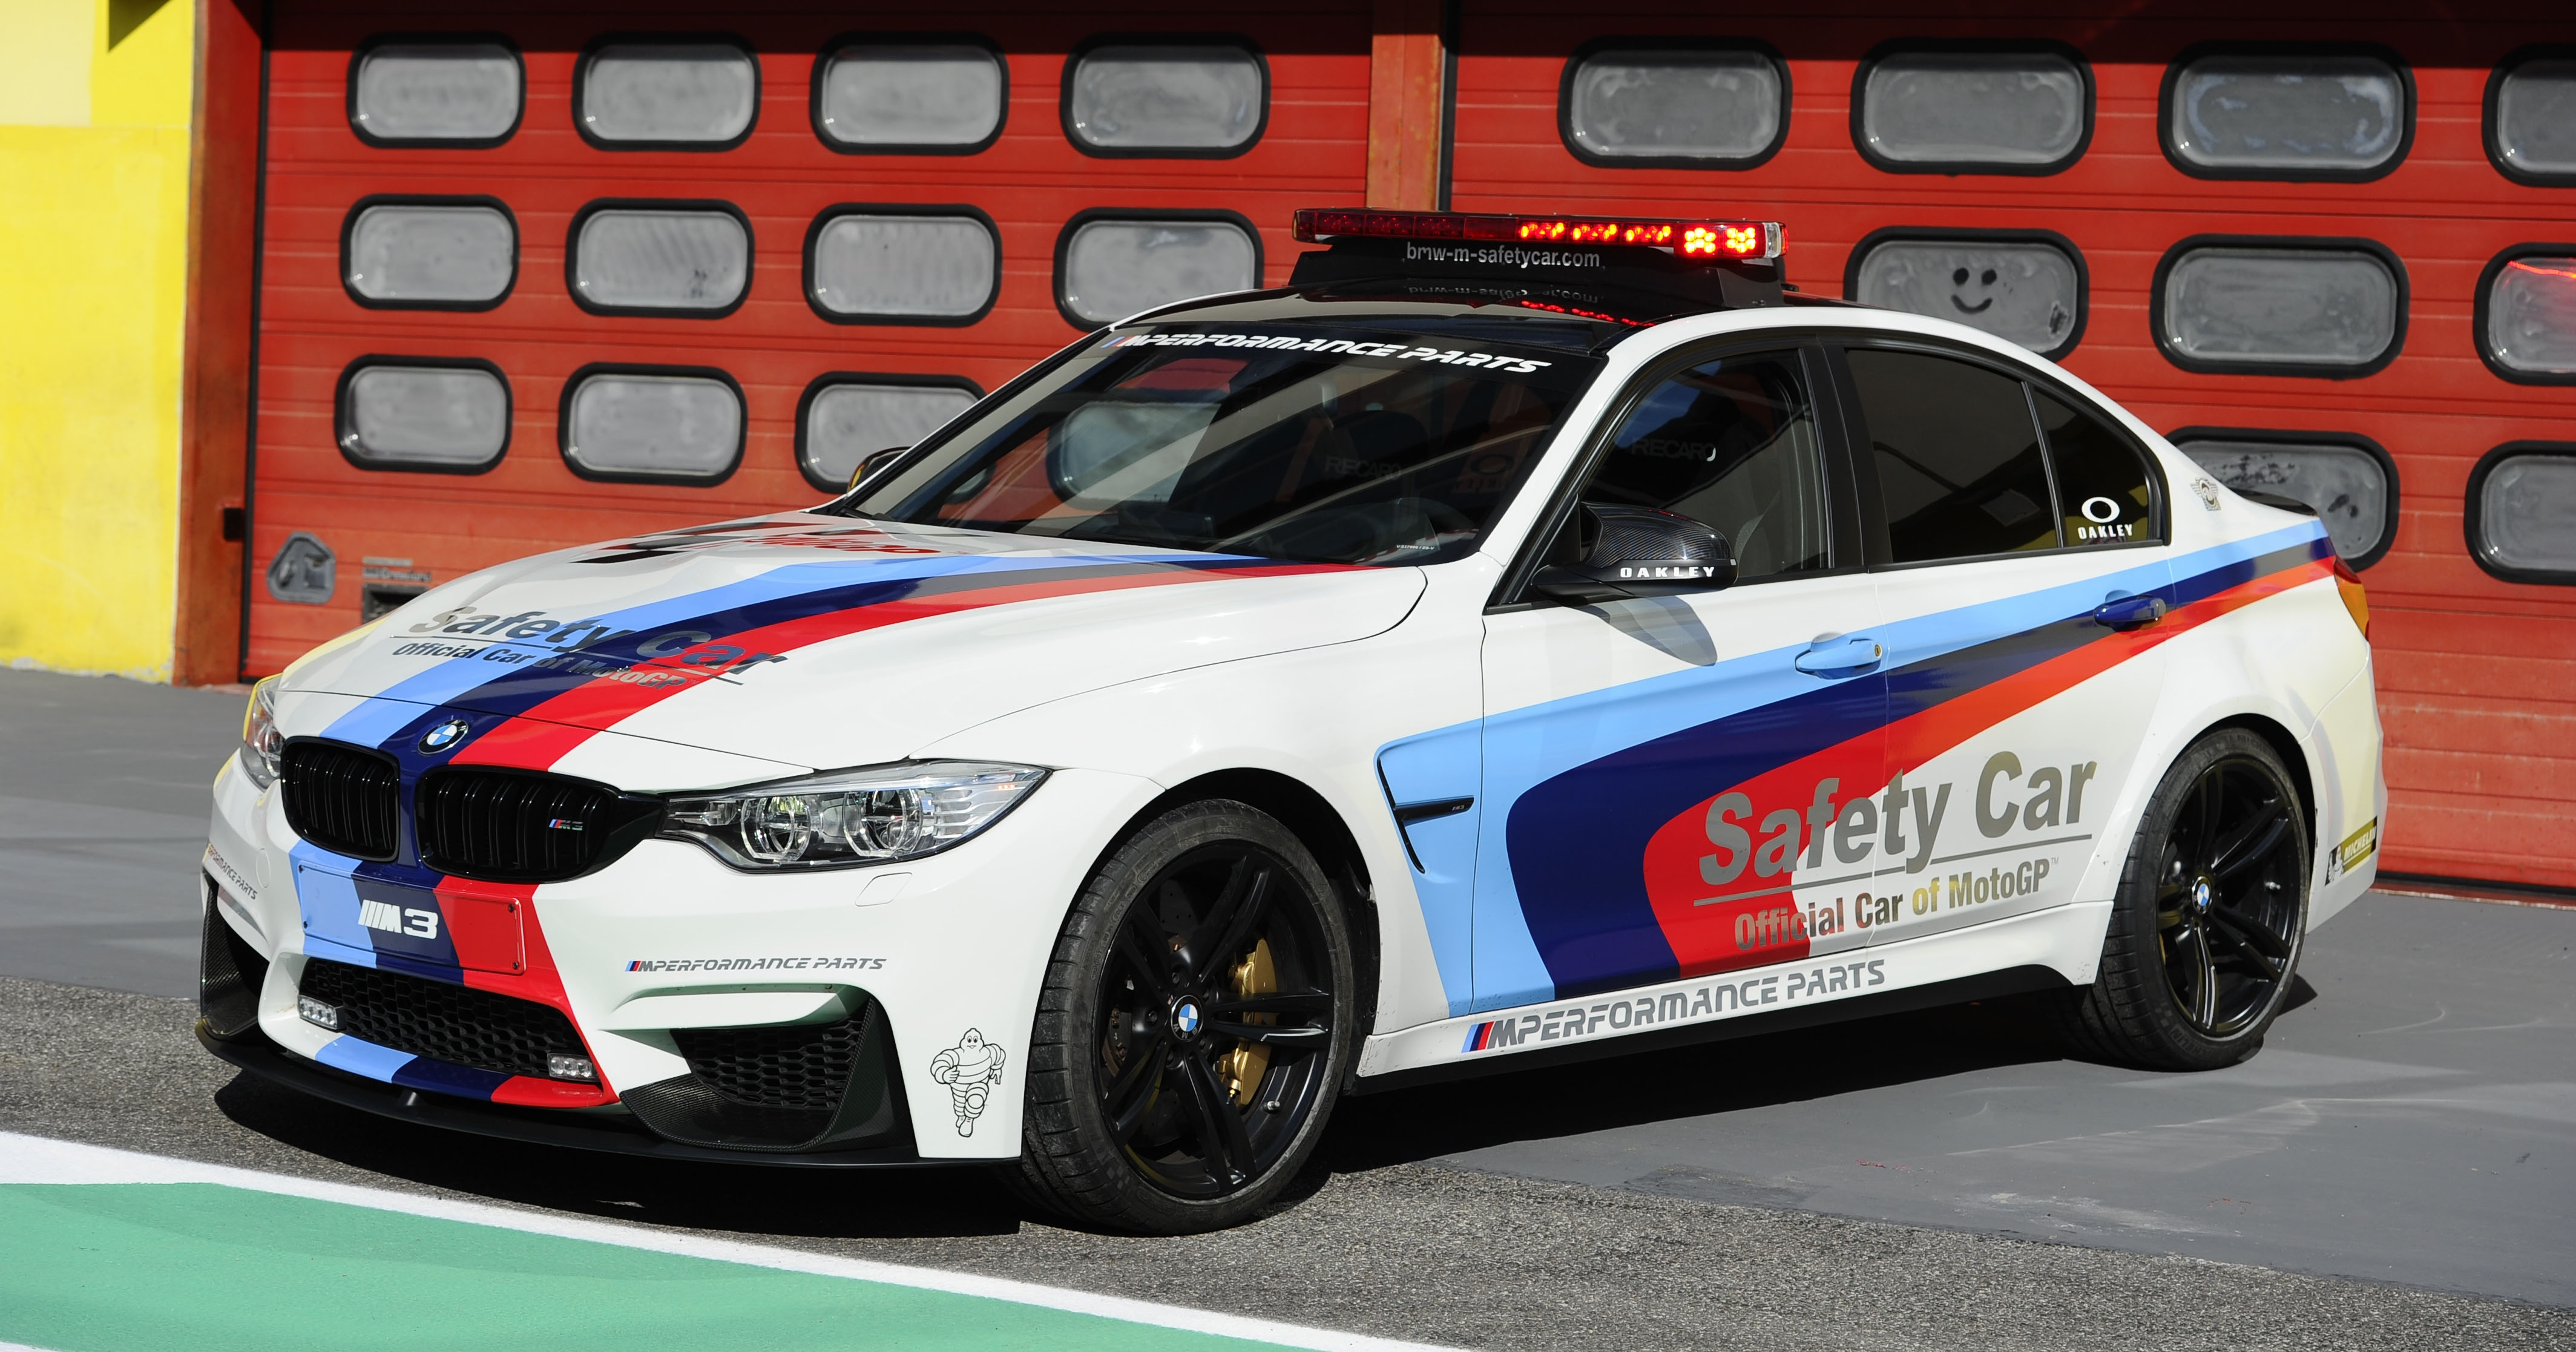 BMW M3 MotoGP safety car will be in KL this Wed Image 567686